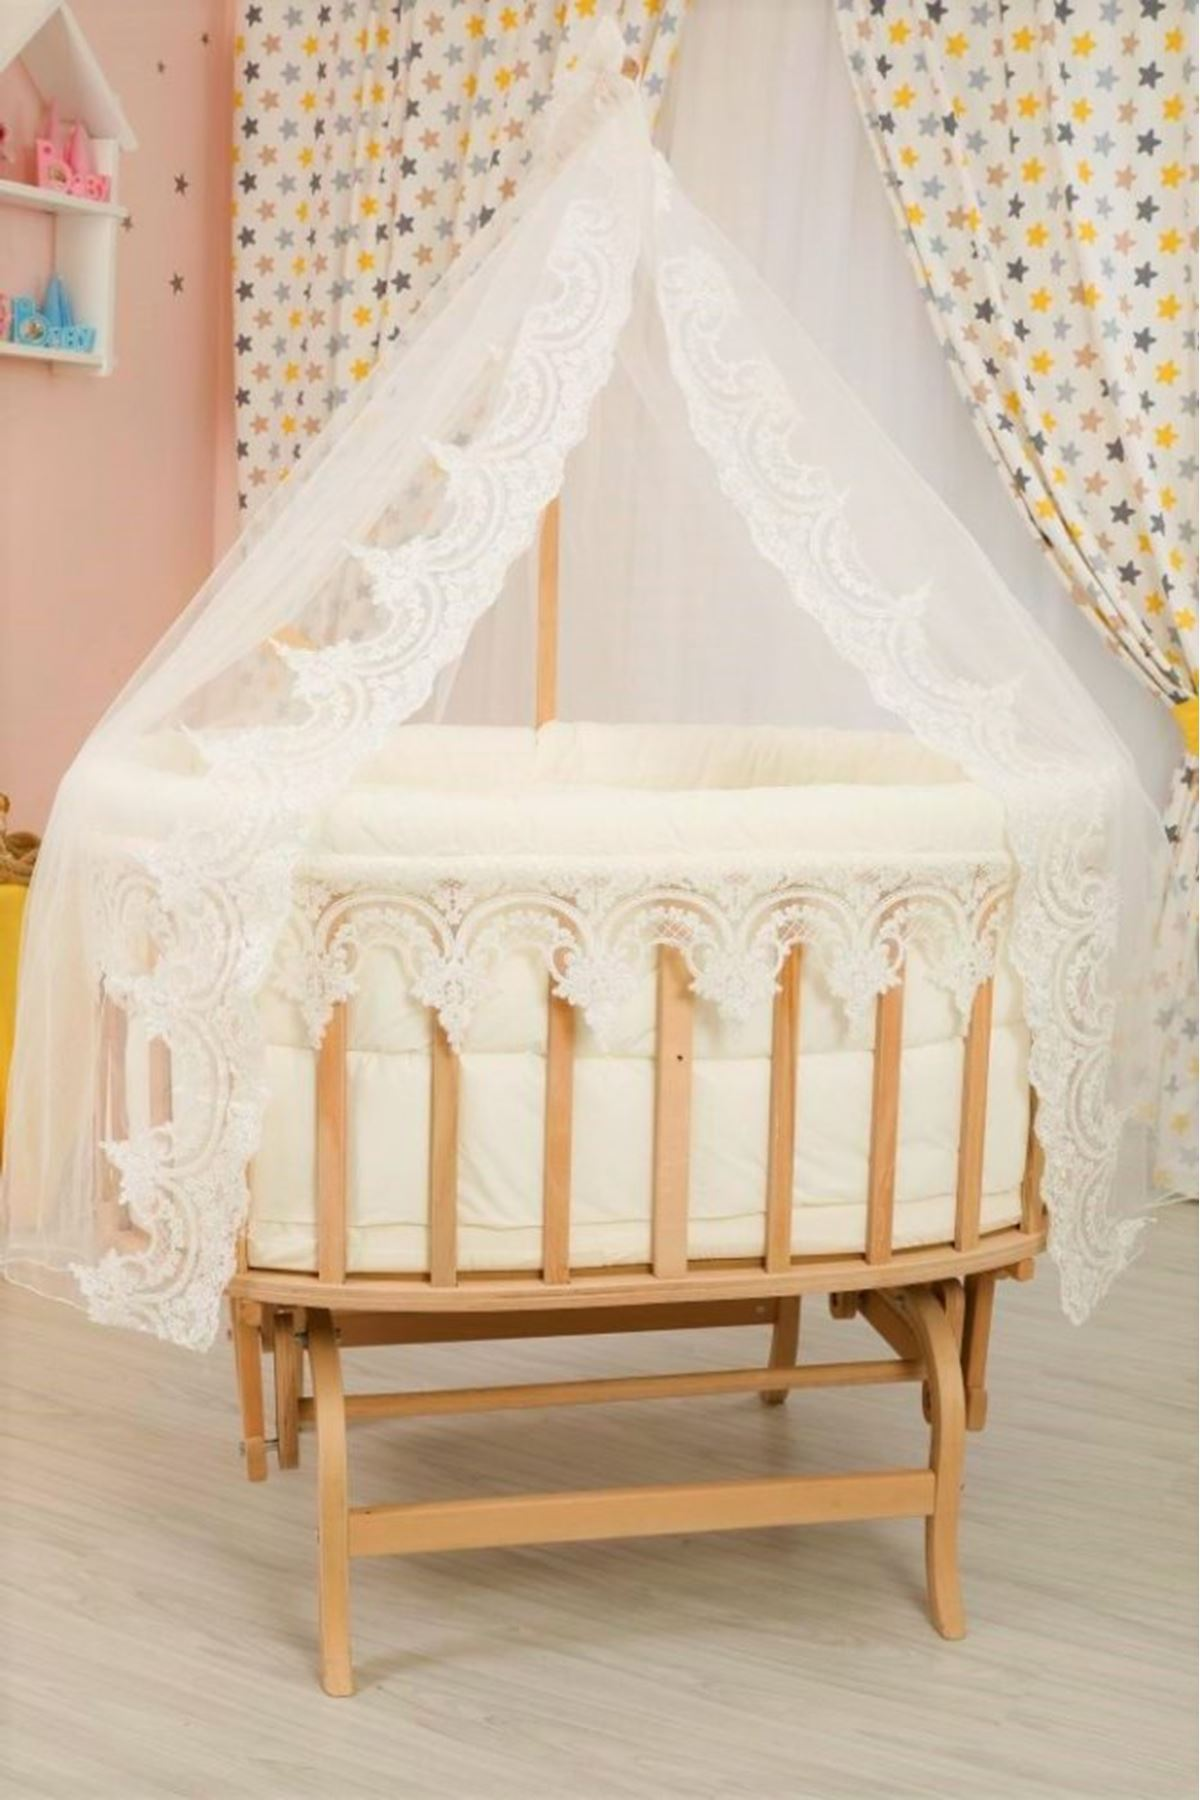 Baby Cot with Guipure Sleeping Set